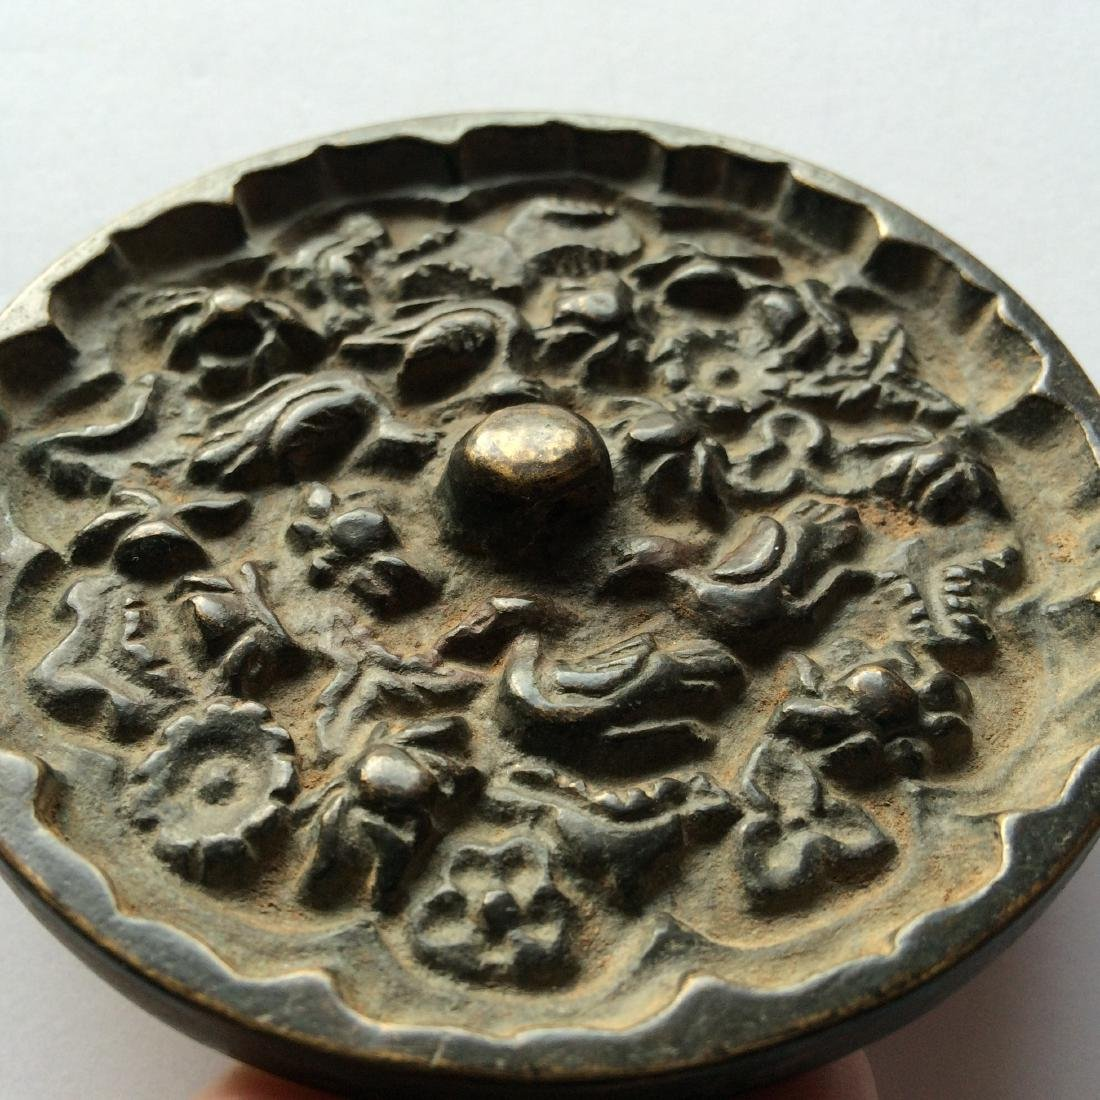 Antique Chinese Bronze Mirror Engraved with Birds - 4